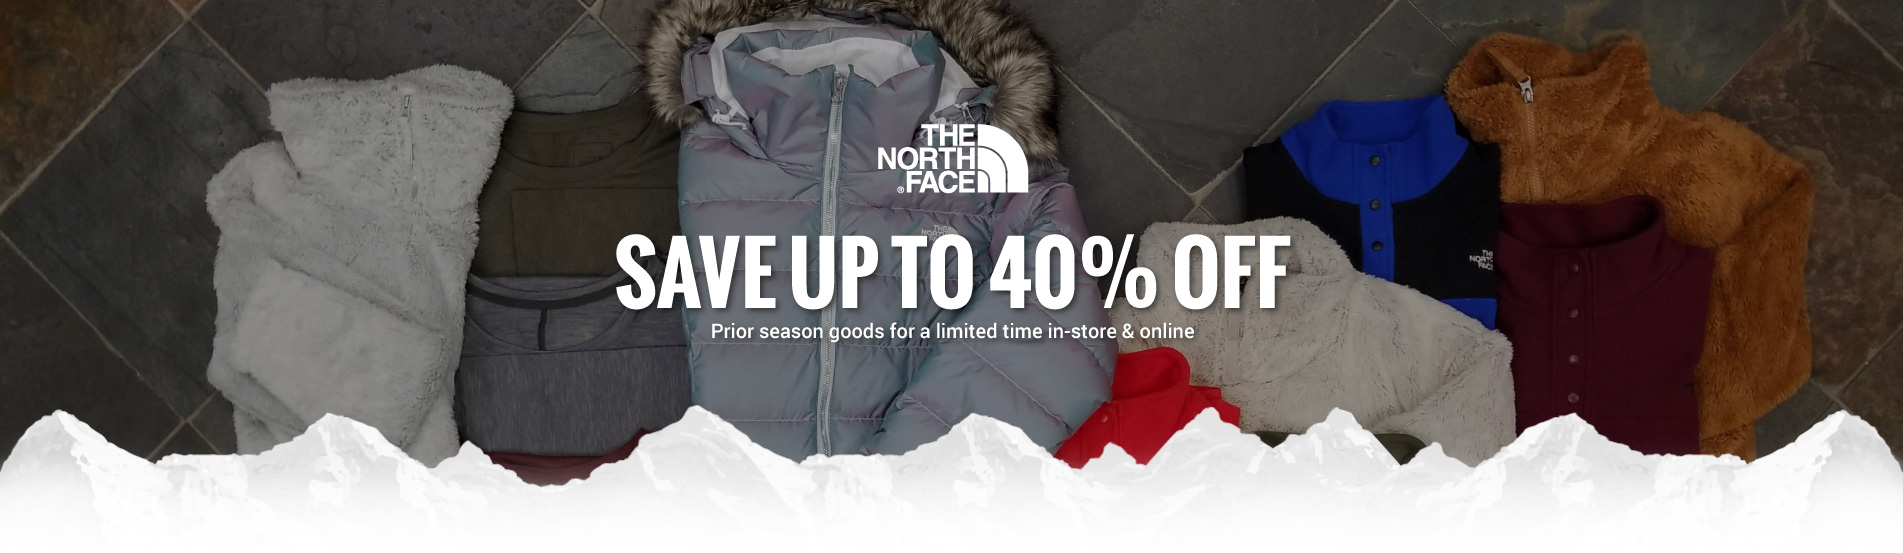 Save up to 40% OFF prior season styles from The North Face for a limited time